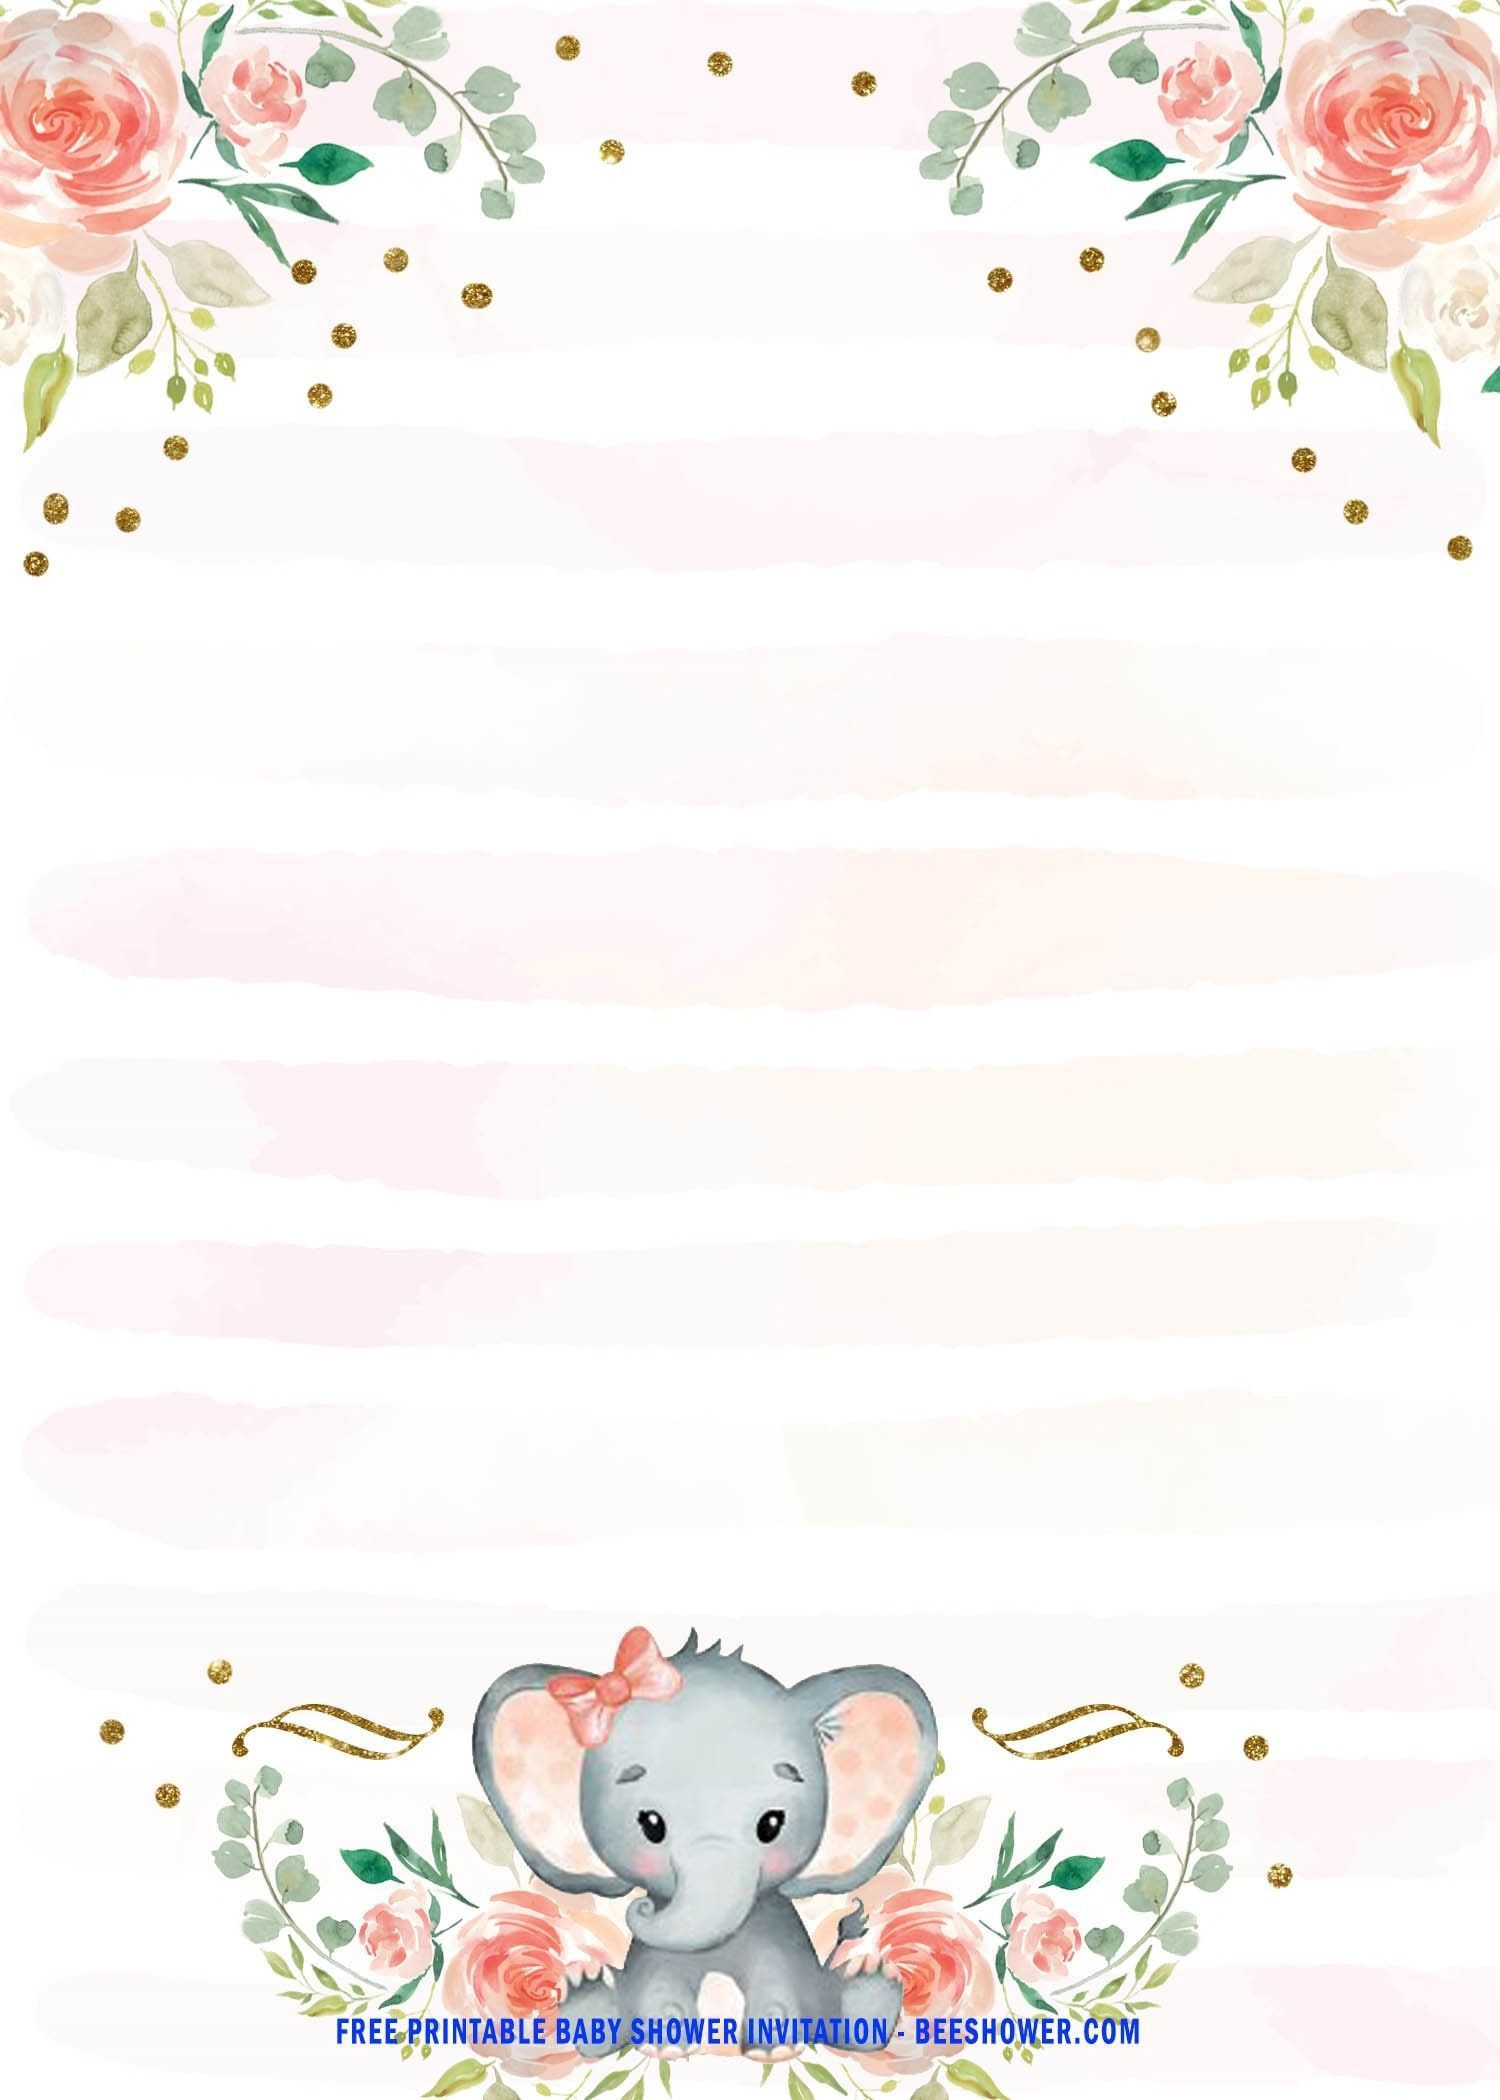 002 Staggering Free Printable Elephant Baby Shower Invitation Template High Definition  Templates EditableFull